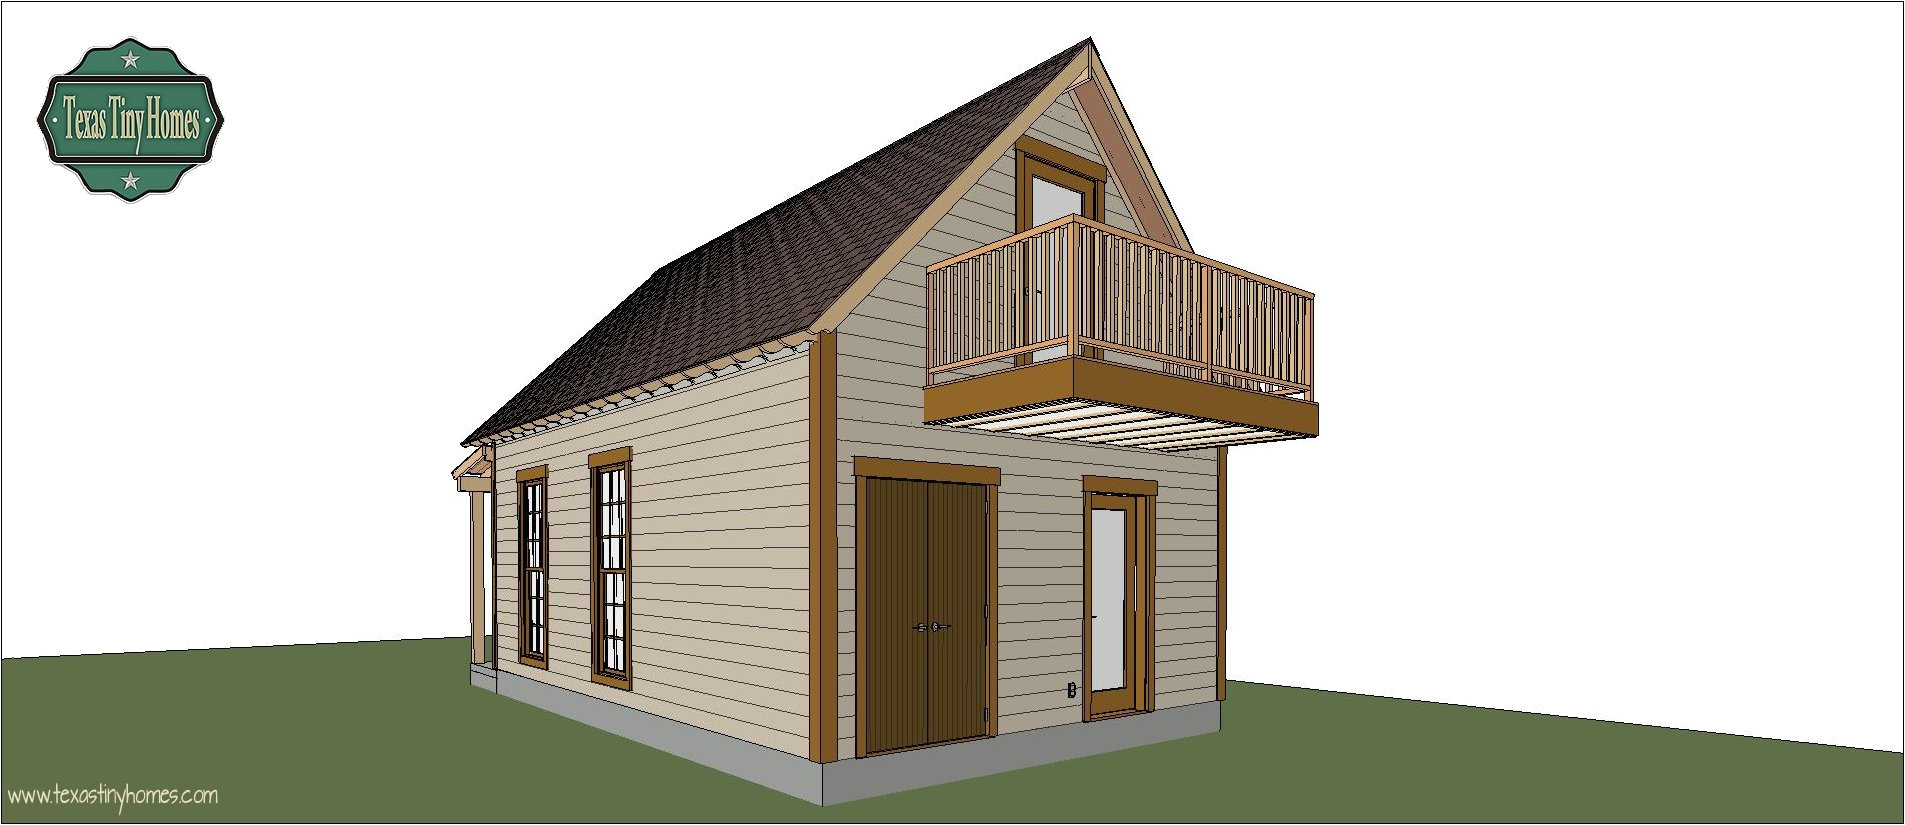 fresh design little house on the trailer plans tiny homes plan little houses plans untitled small house home modern with free pictures good design bedroom kitchen designs the charmer building wheels k